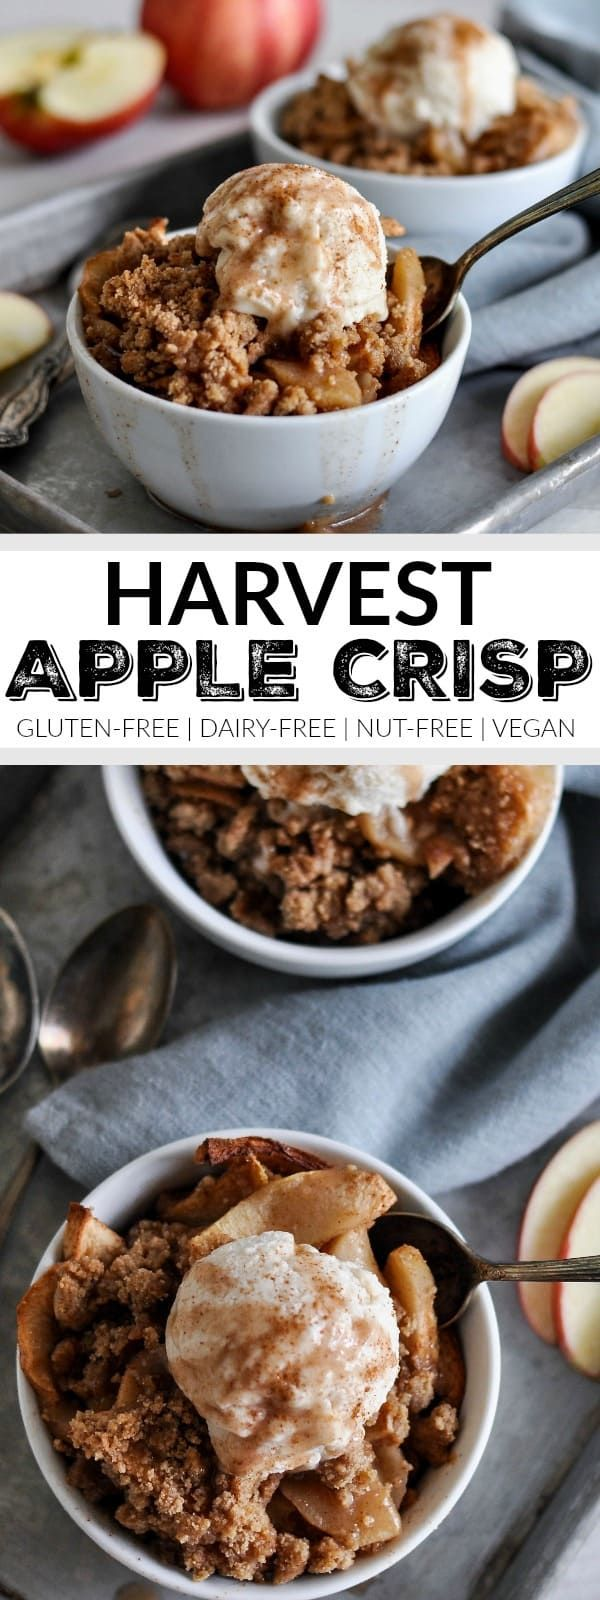 Gluten-free Harvest Apple Crisp